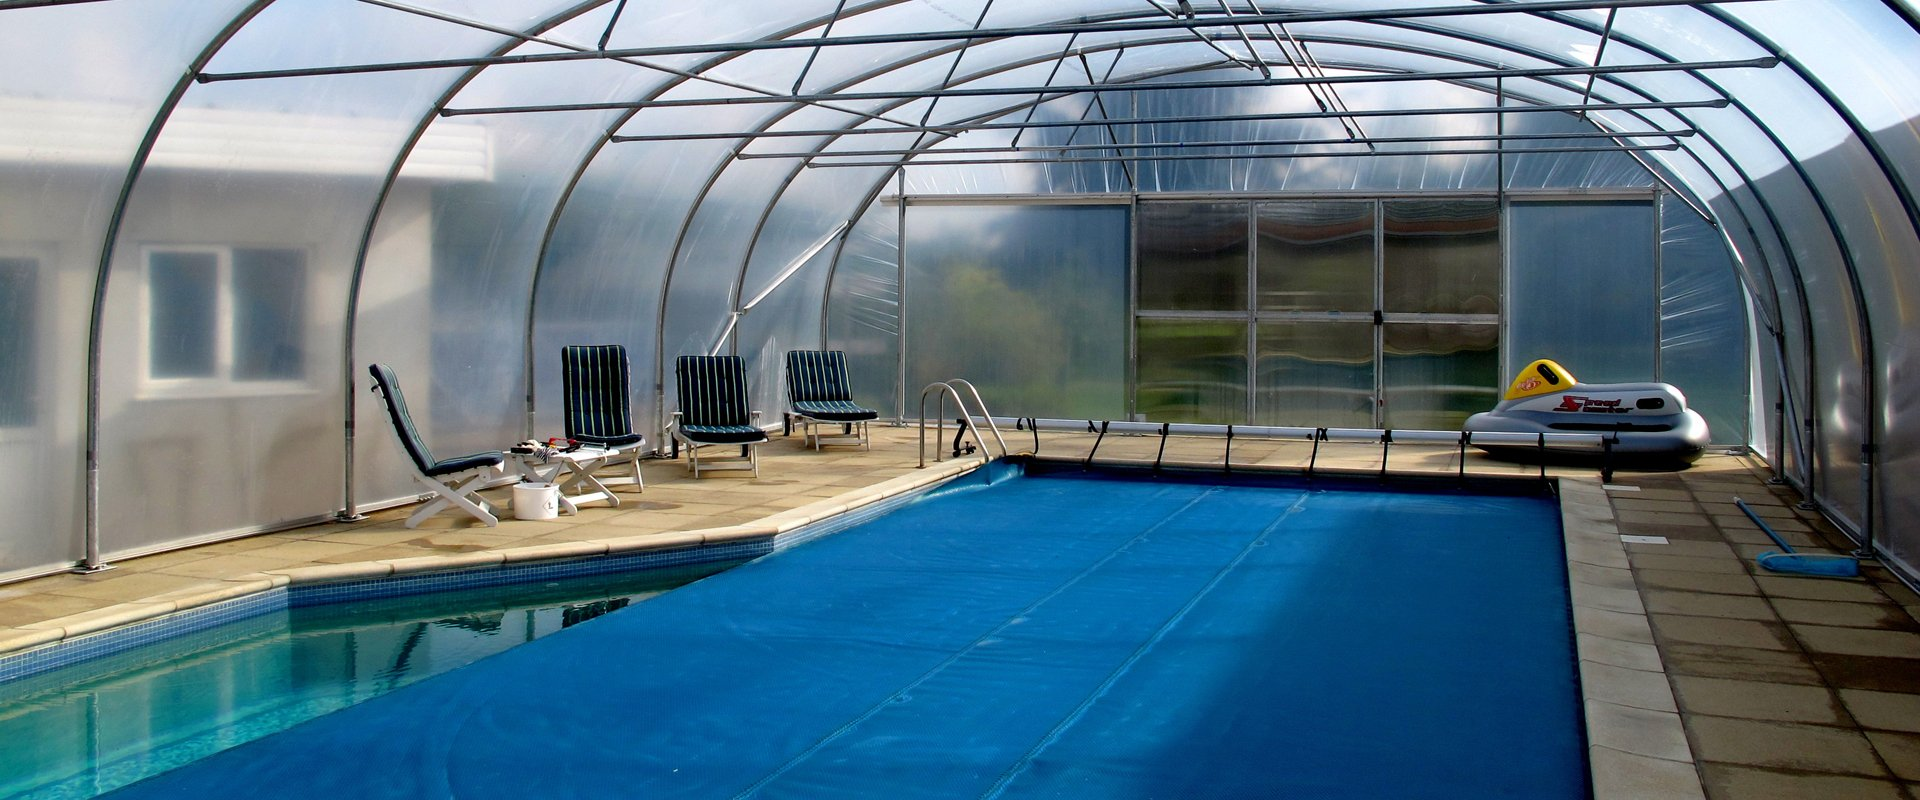 Swimming Pool Shelters And Pool Enclosures Supplied In